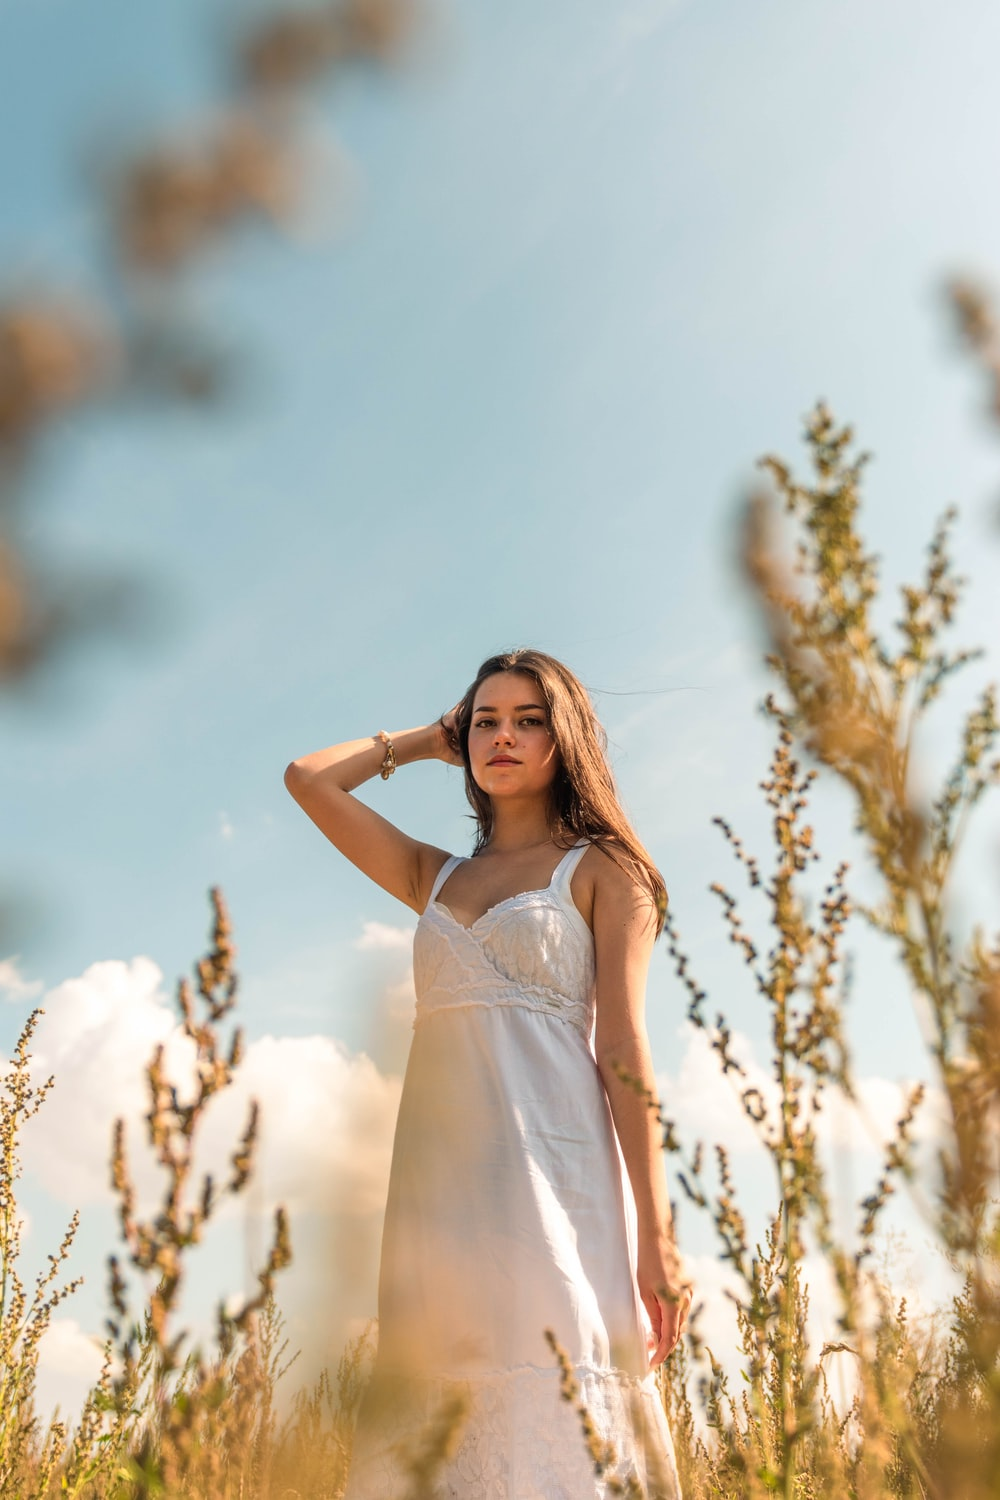 woman in white spaghetti strap dress standing near brown tree during daytime